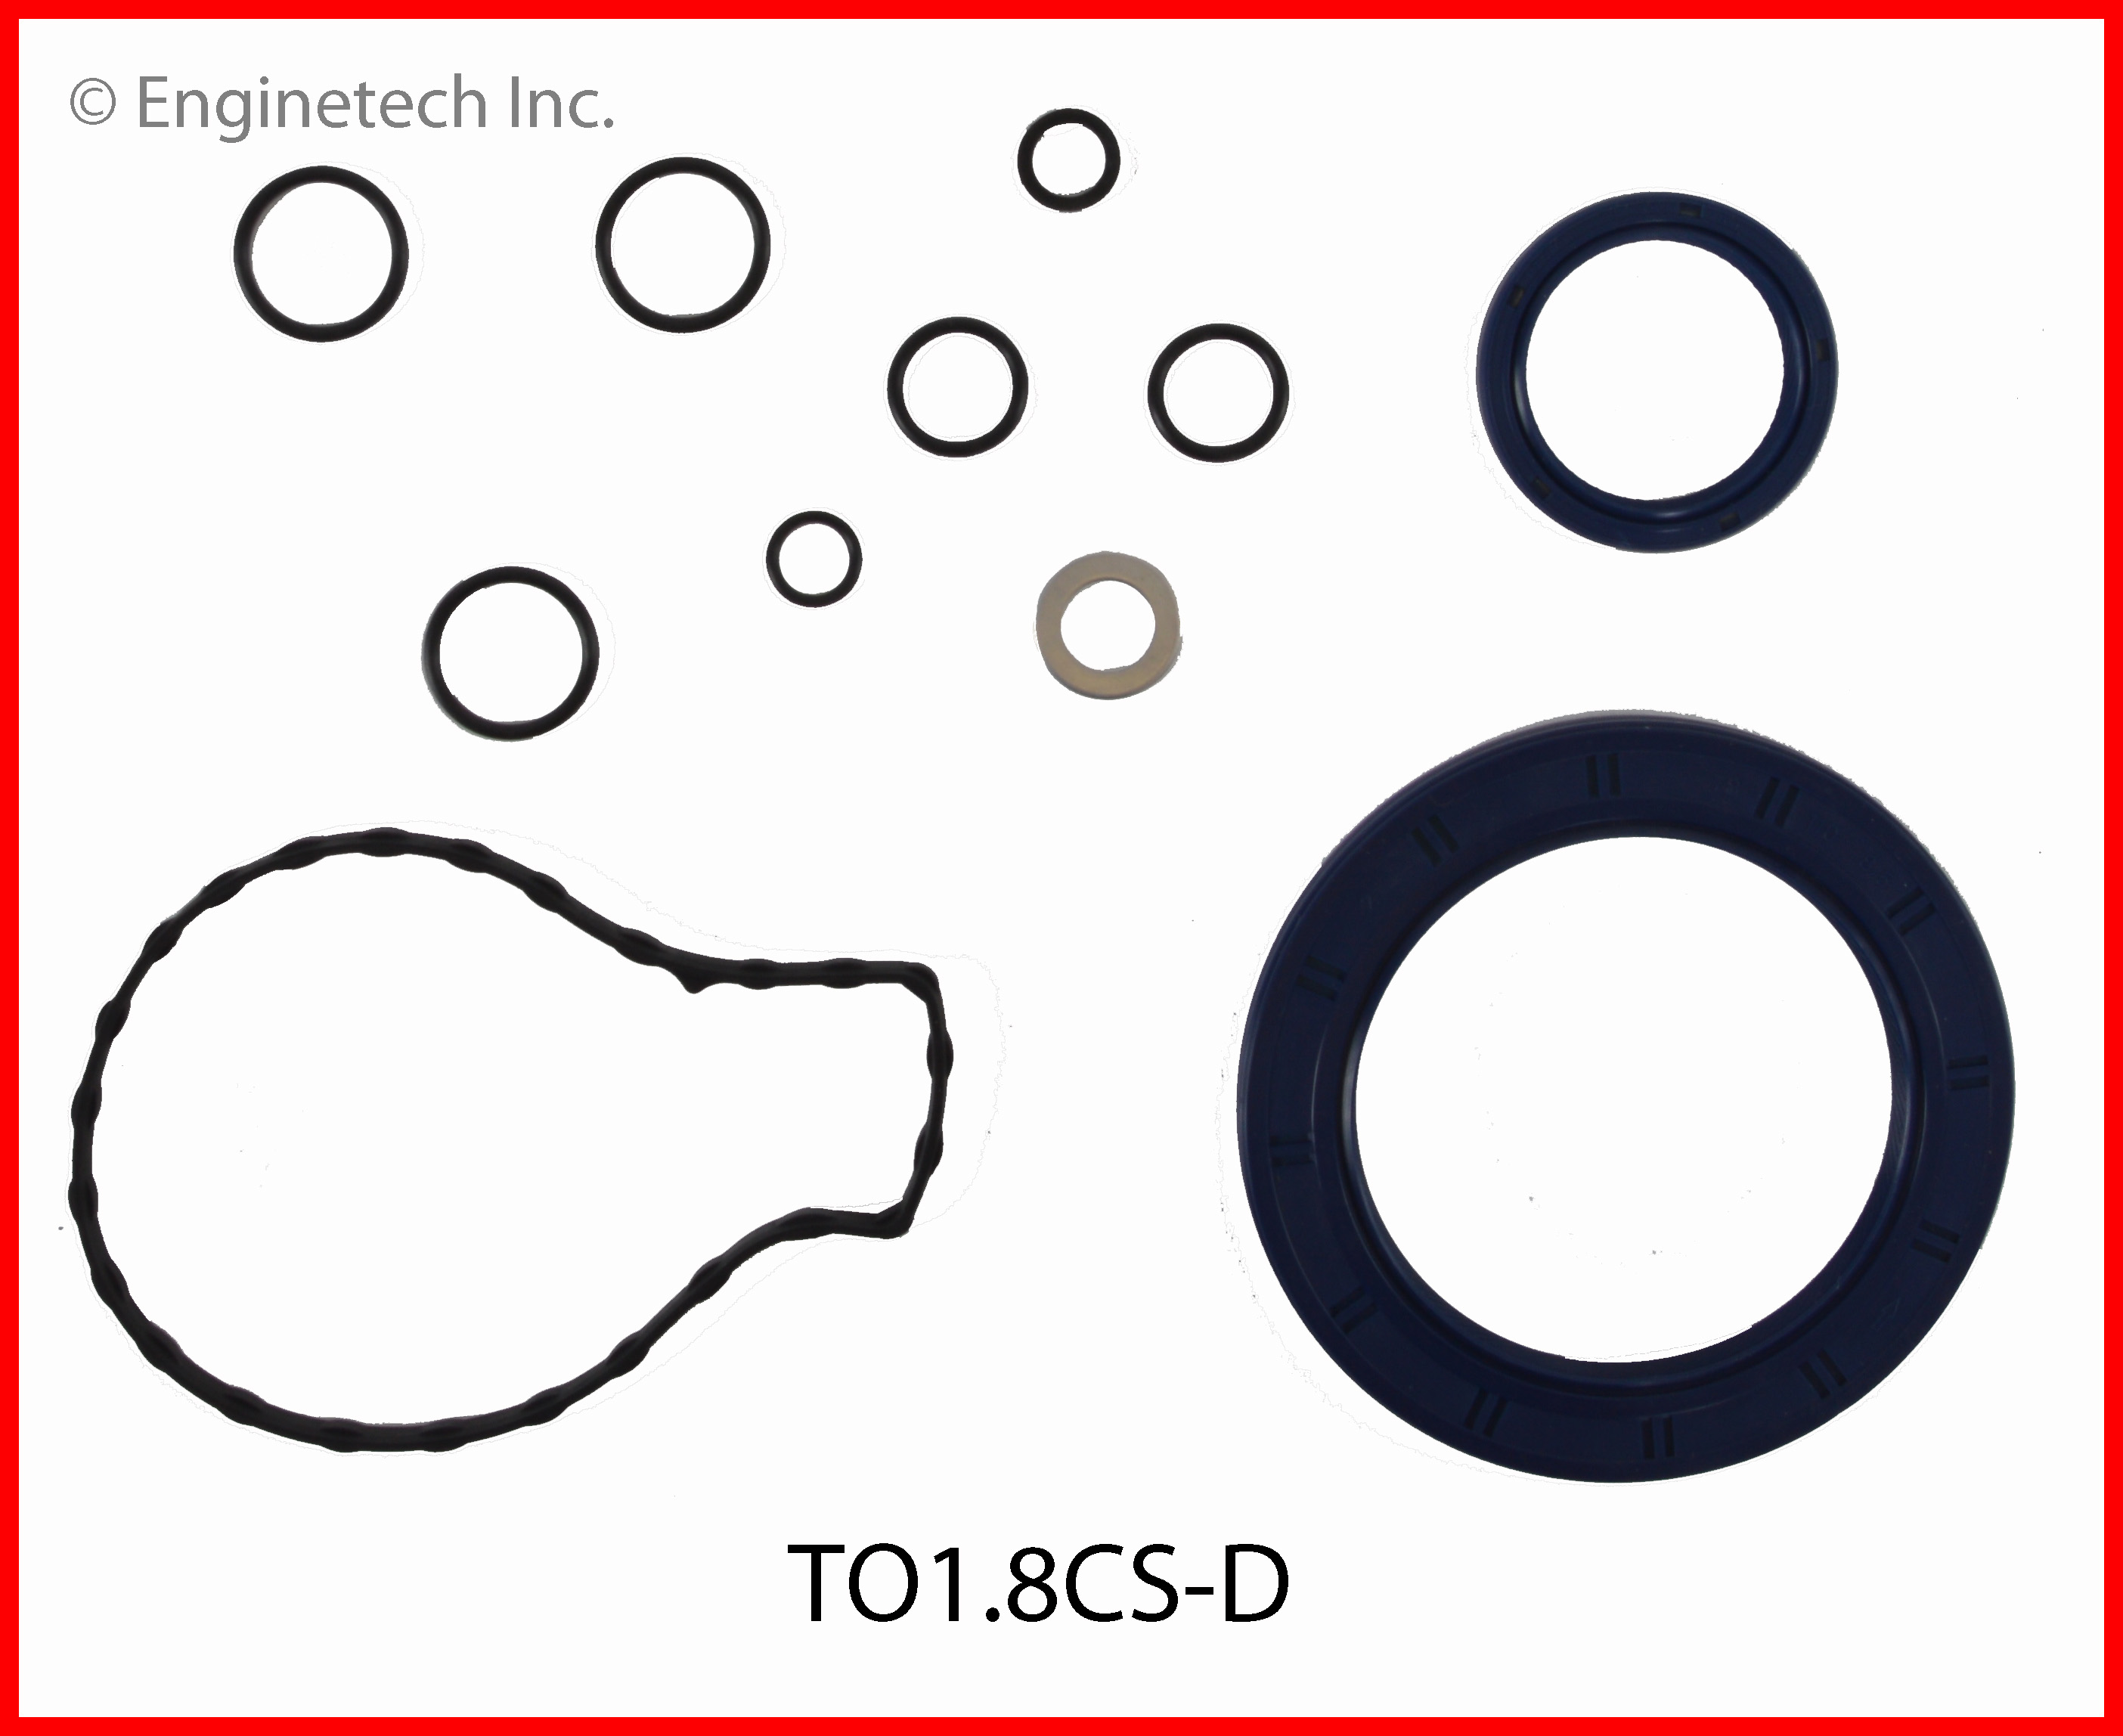 TO1.8CS-D Gasket Set - Lower Enginetech